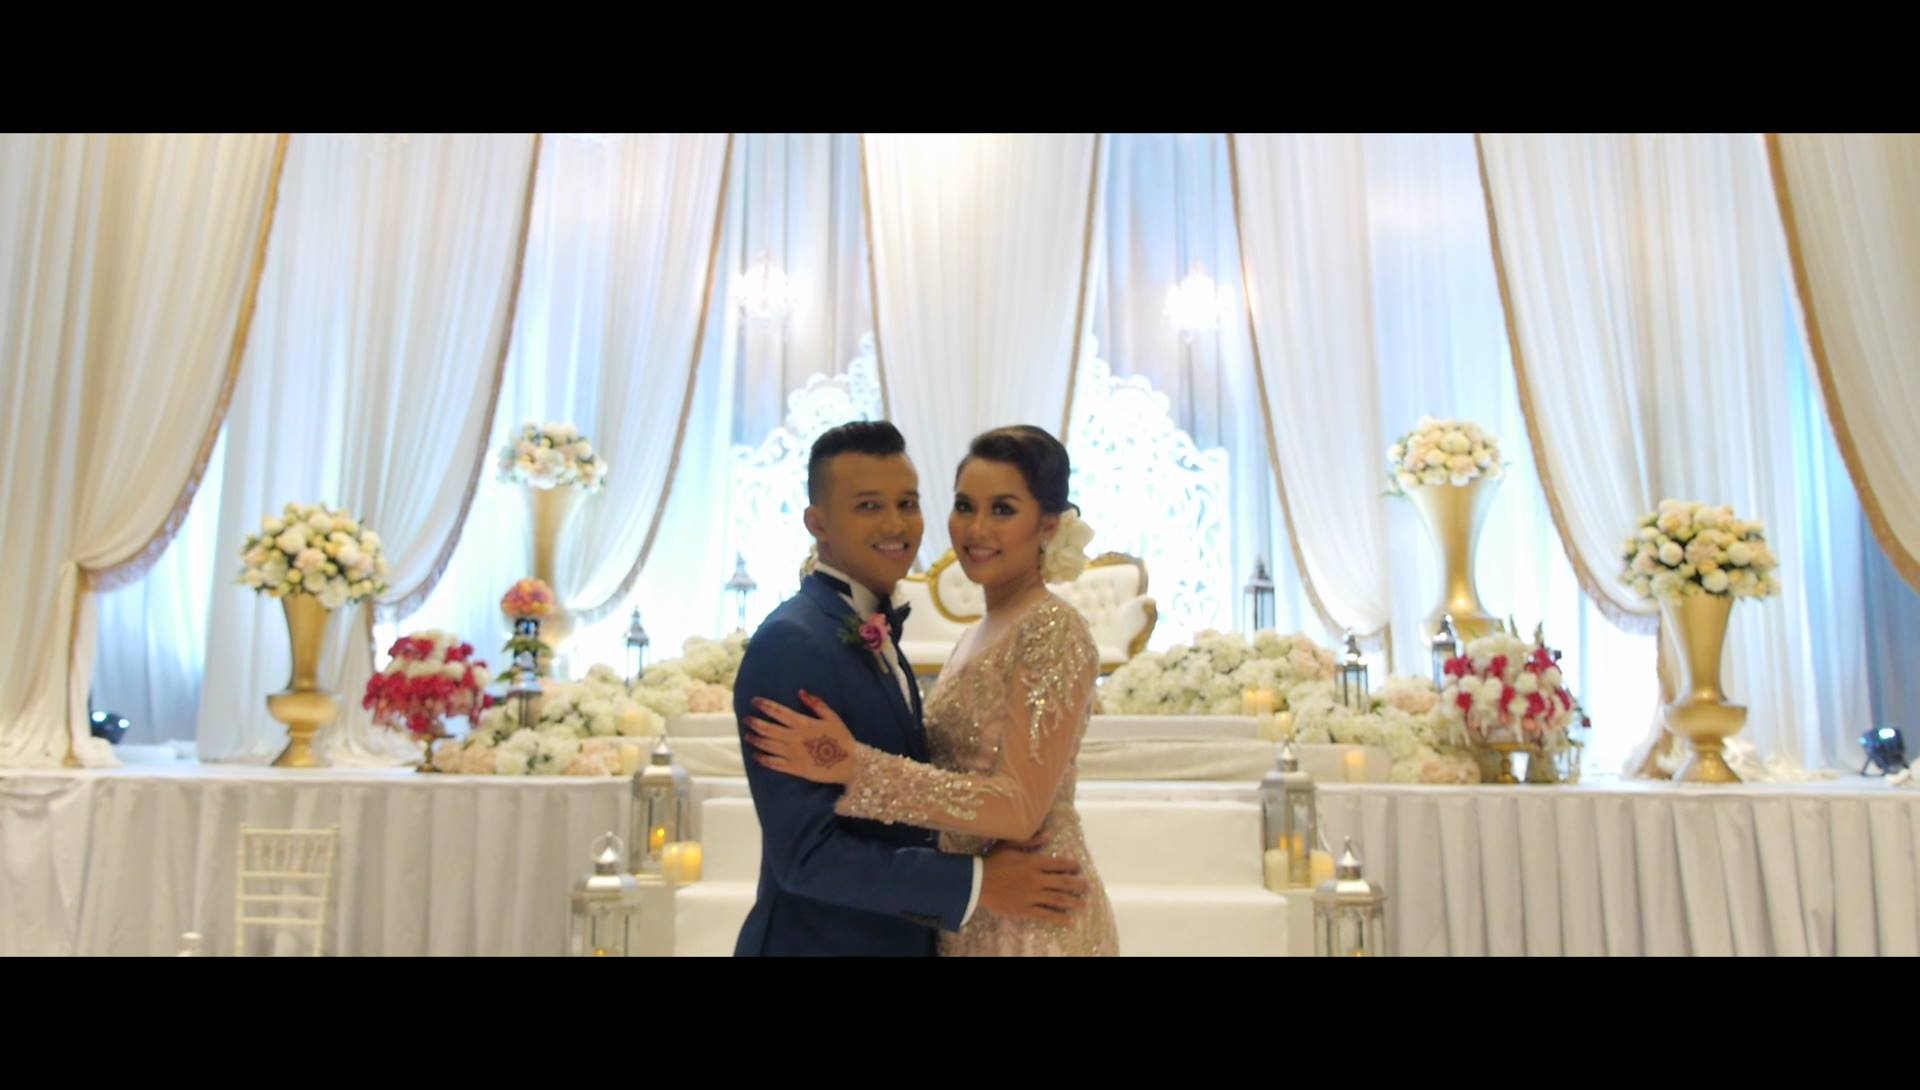 Shafiee & Natria's Wedding Film